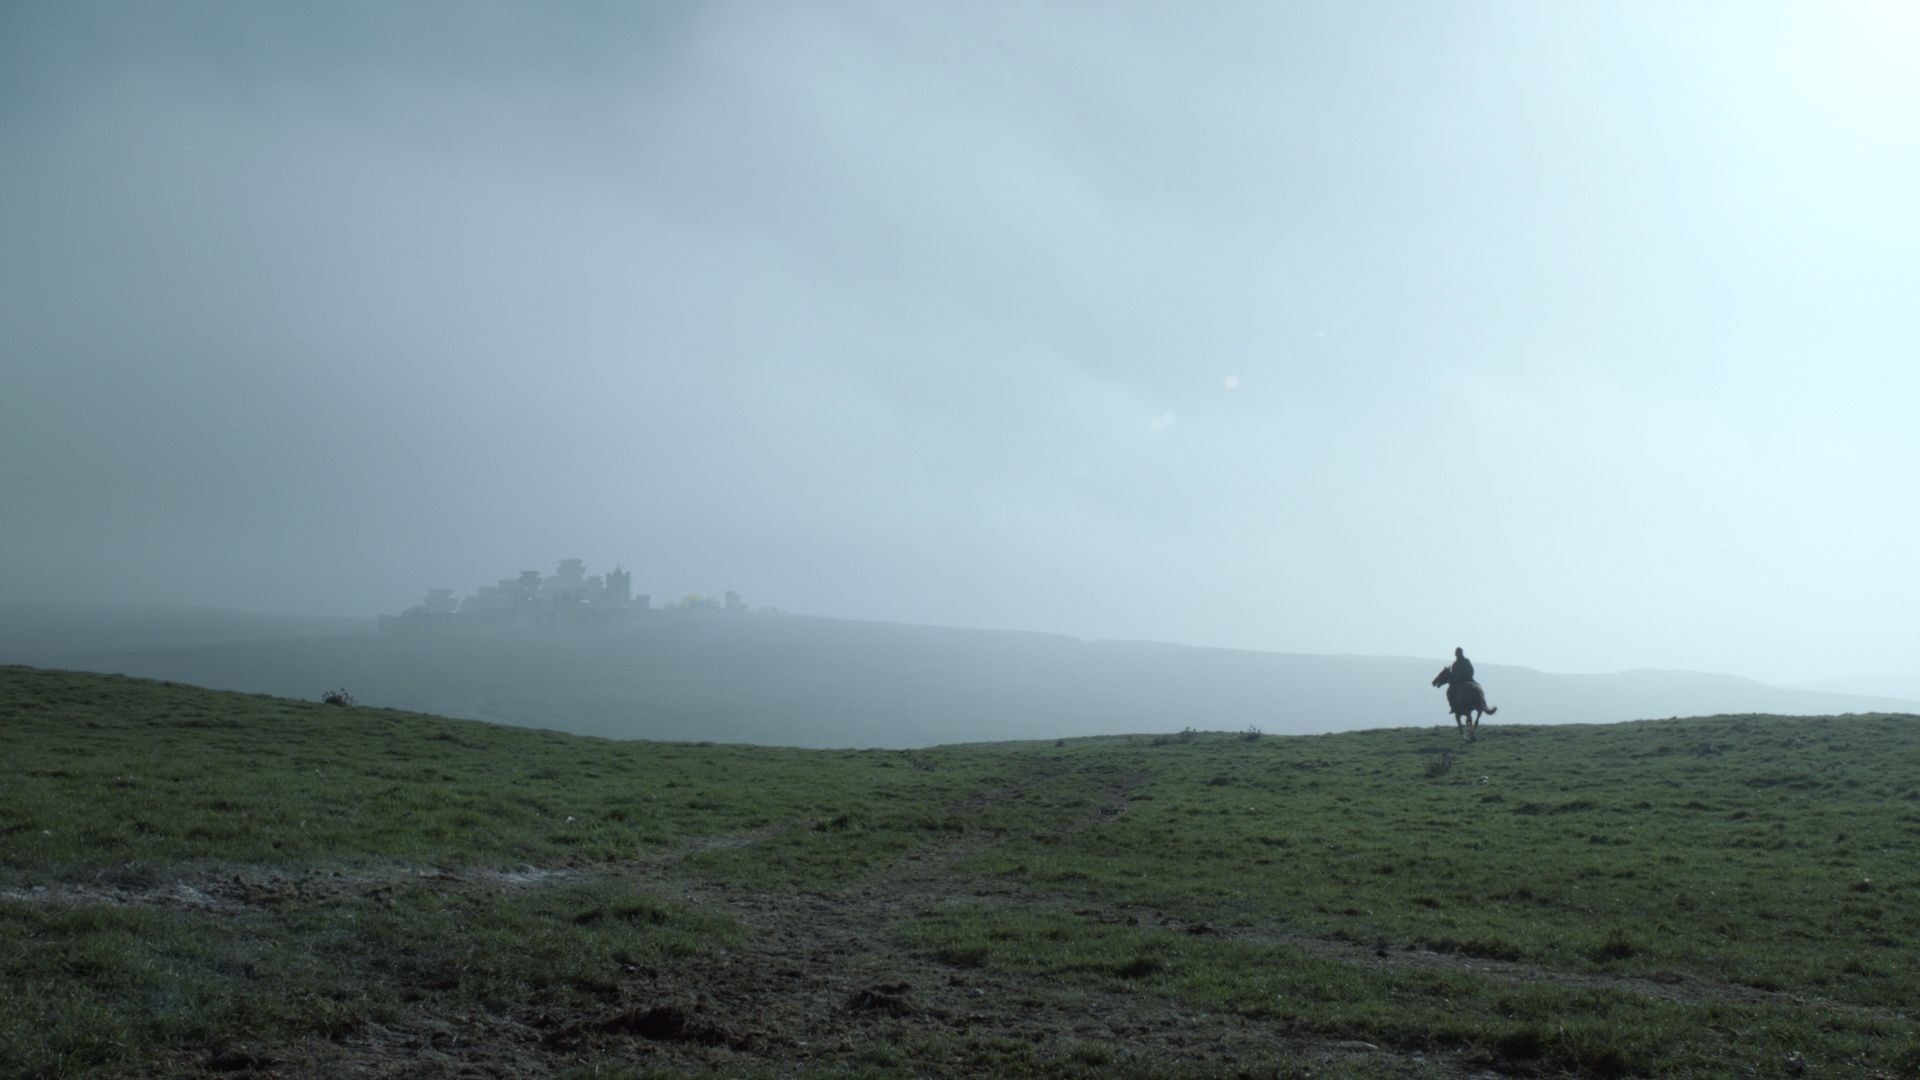 Game of Thrones landscape hill